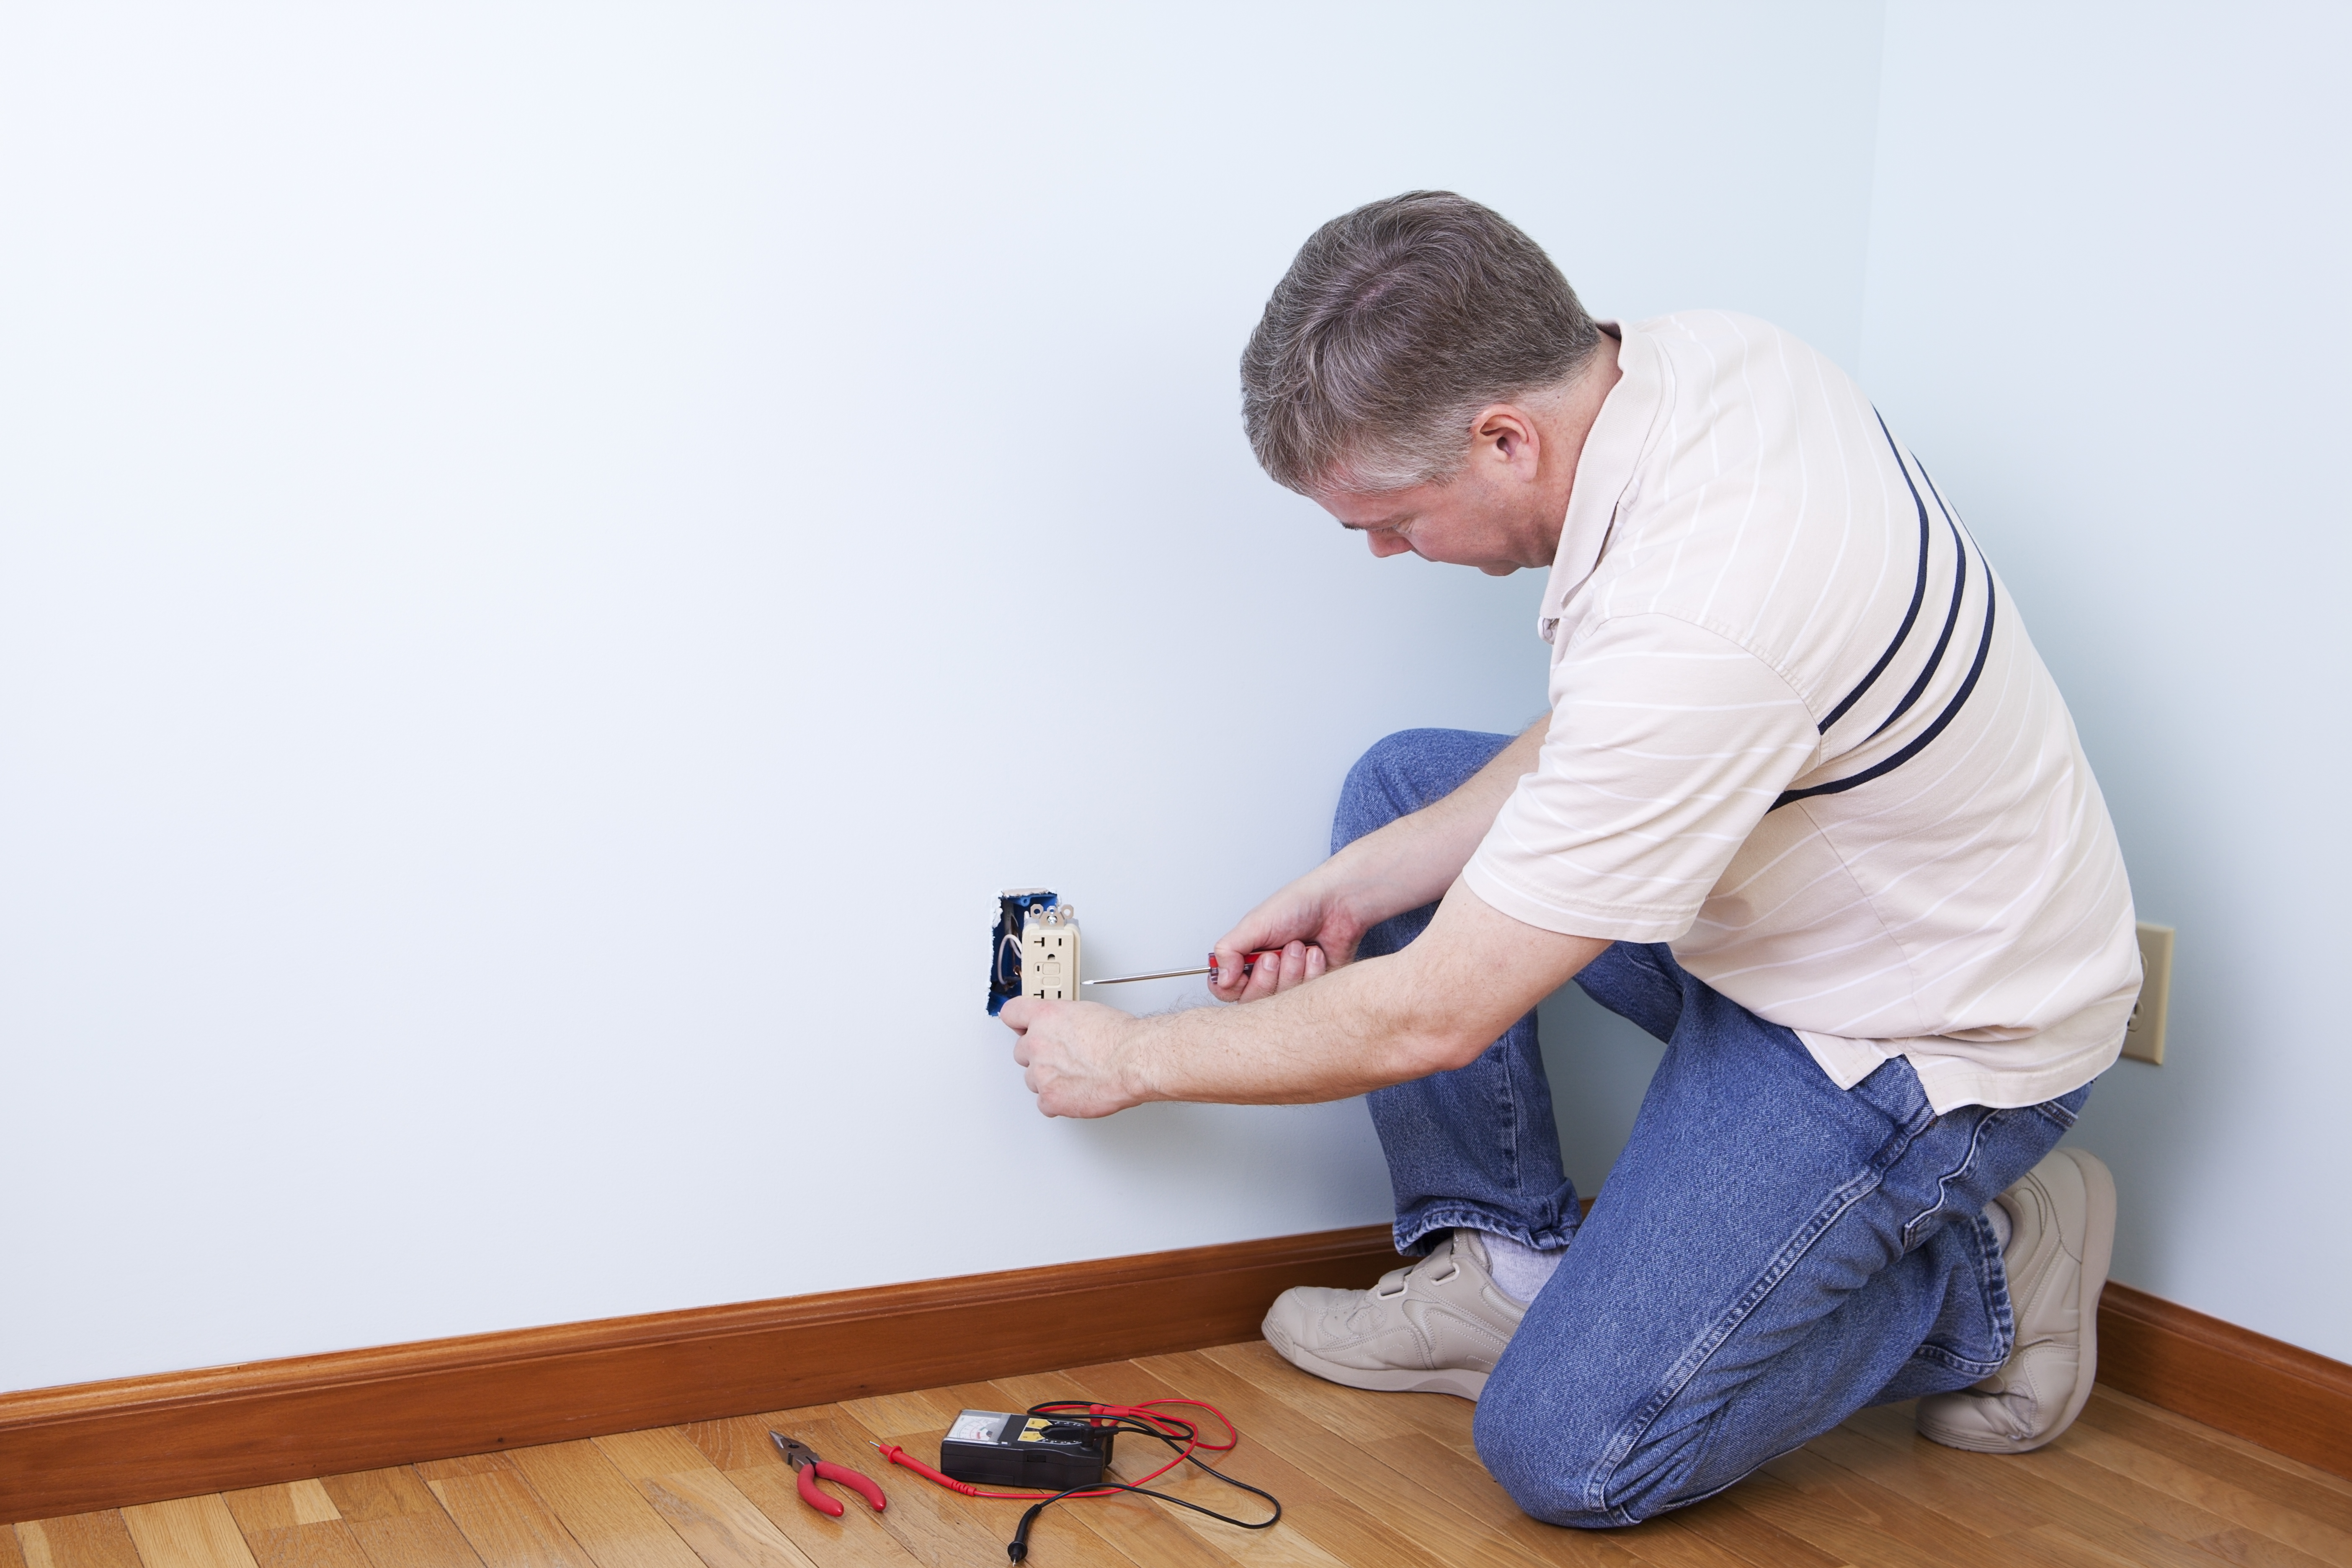 How to Wire an Electrical Outlet With Red, White, & Black